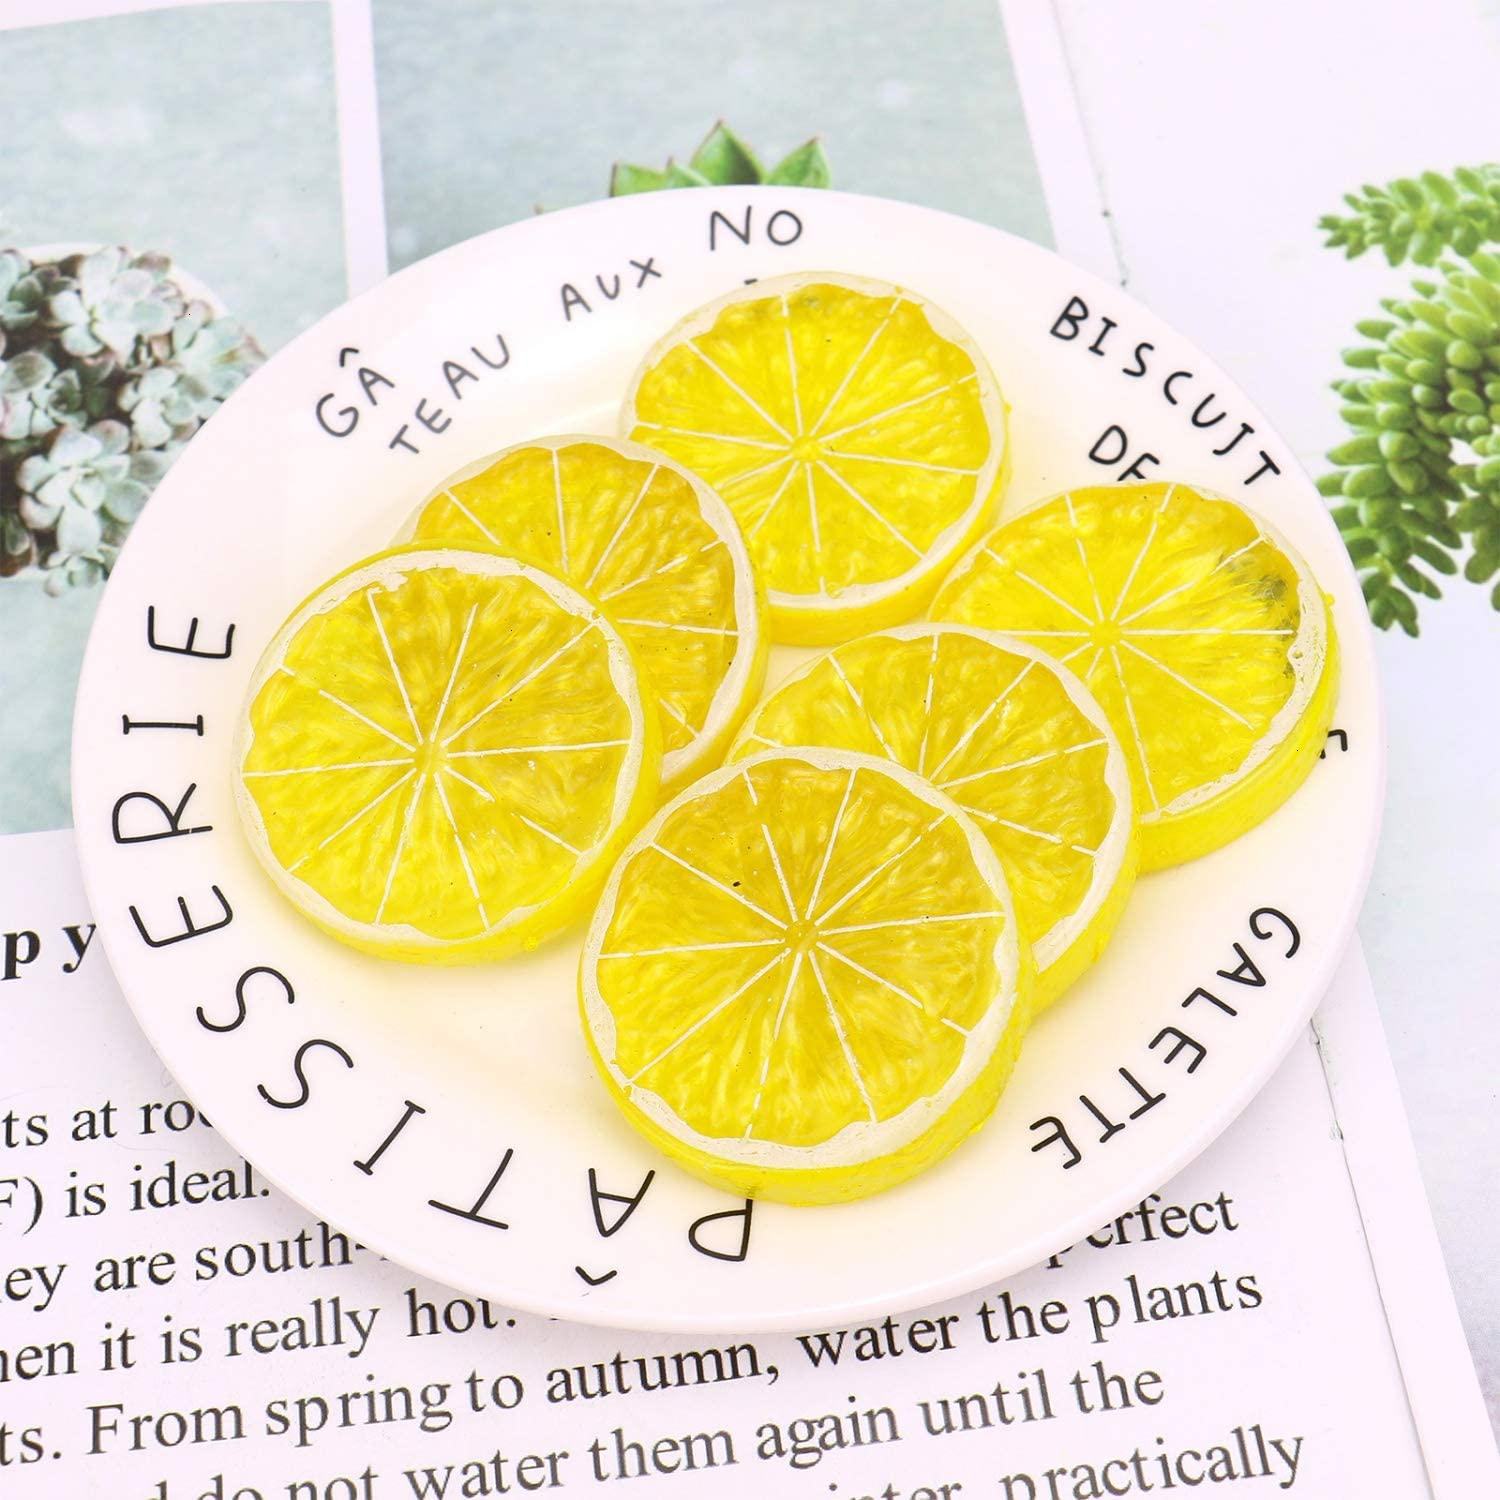 JETEHO 30PCS Mini Small Simulation Lemon Slices, Plastic Fake Artificial Fruit Model Party Kitchen Wedding Decoration (Yellow)